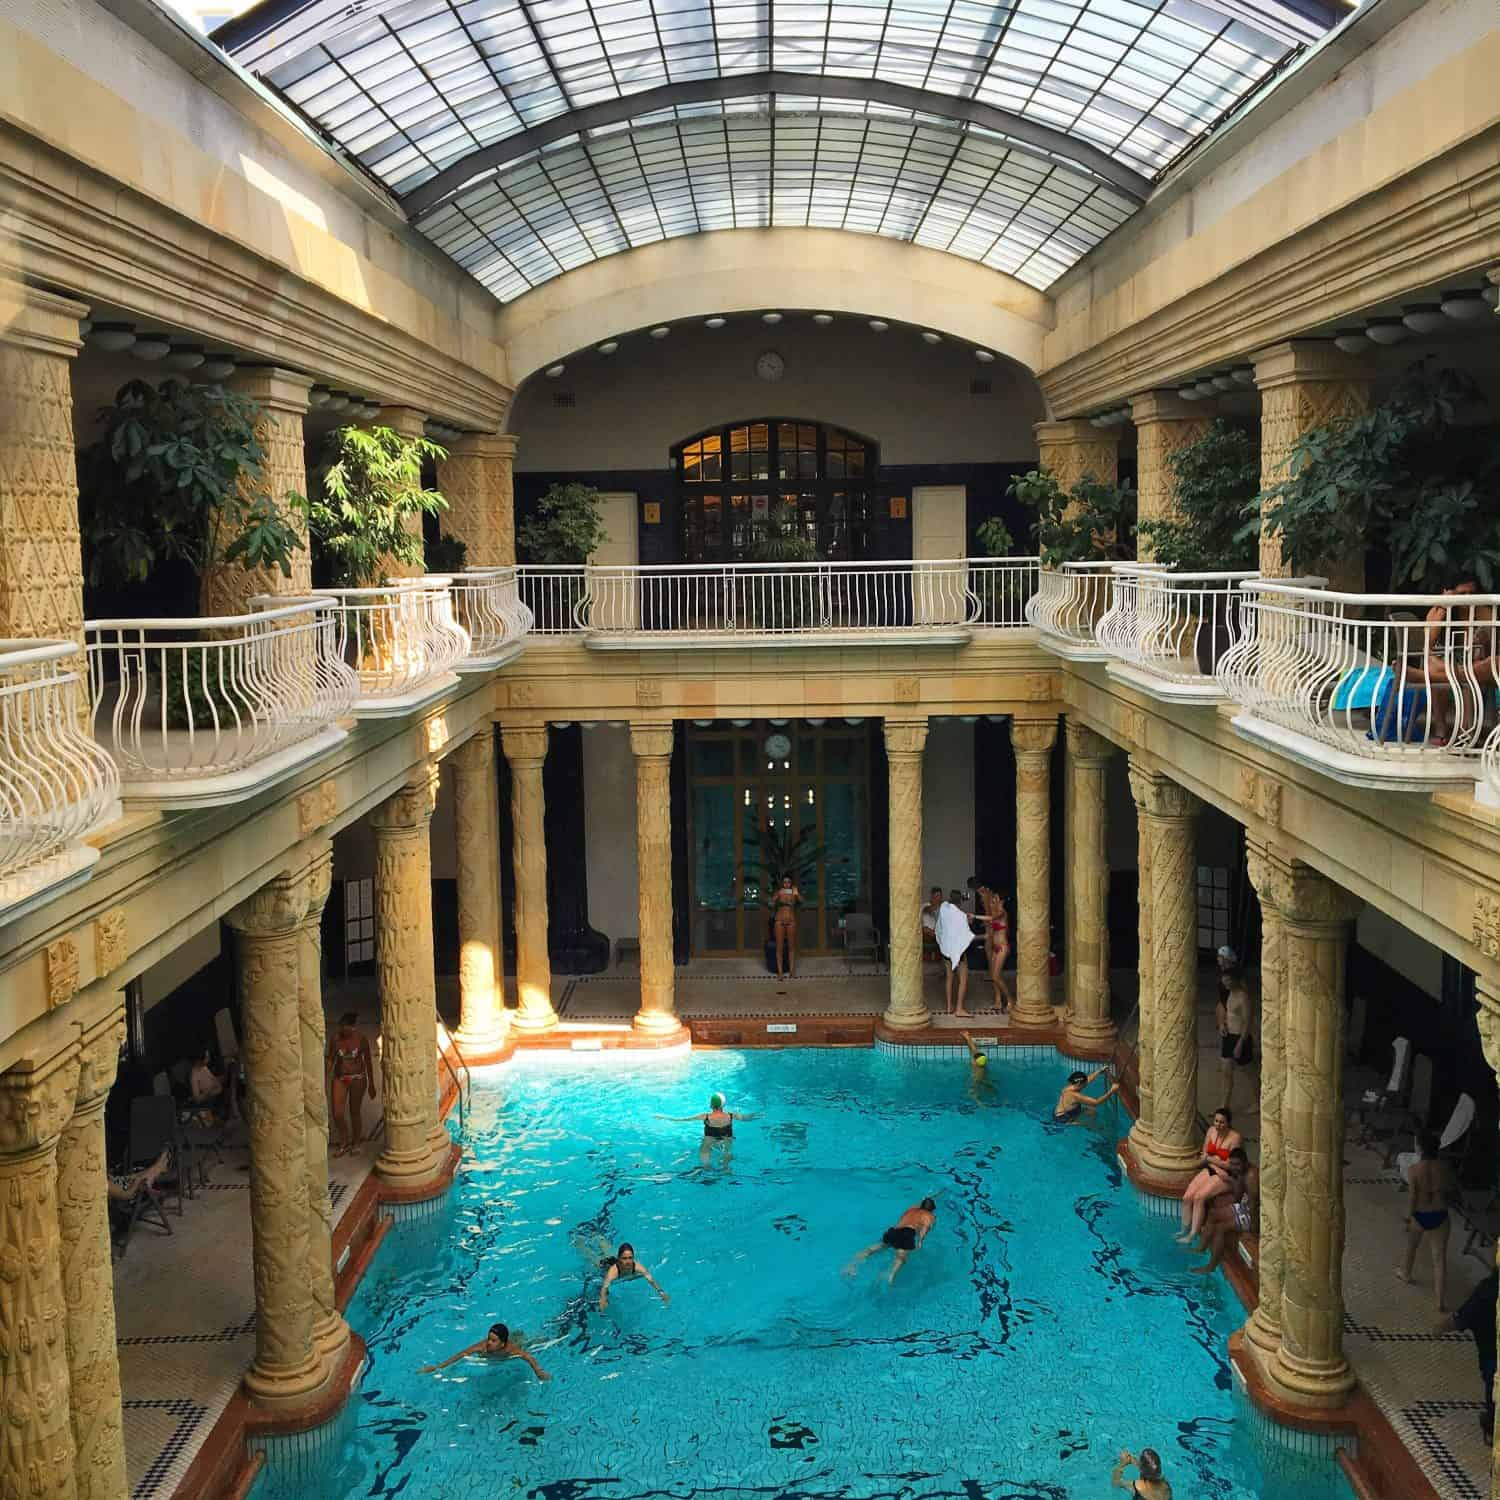 Baños Gellert Budapest Visiting The Budapest Gellert Baths With Kids Four